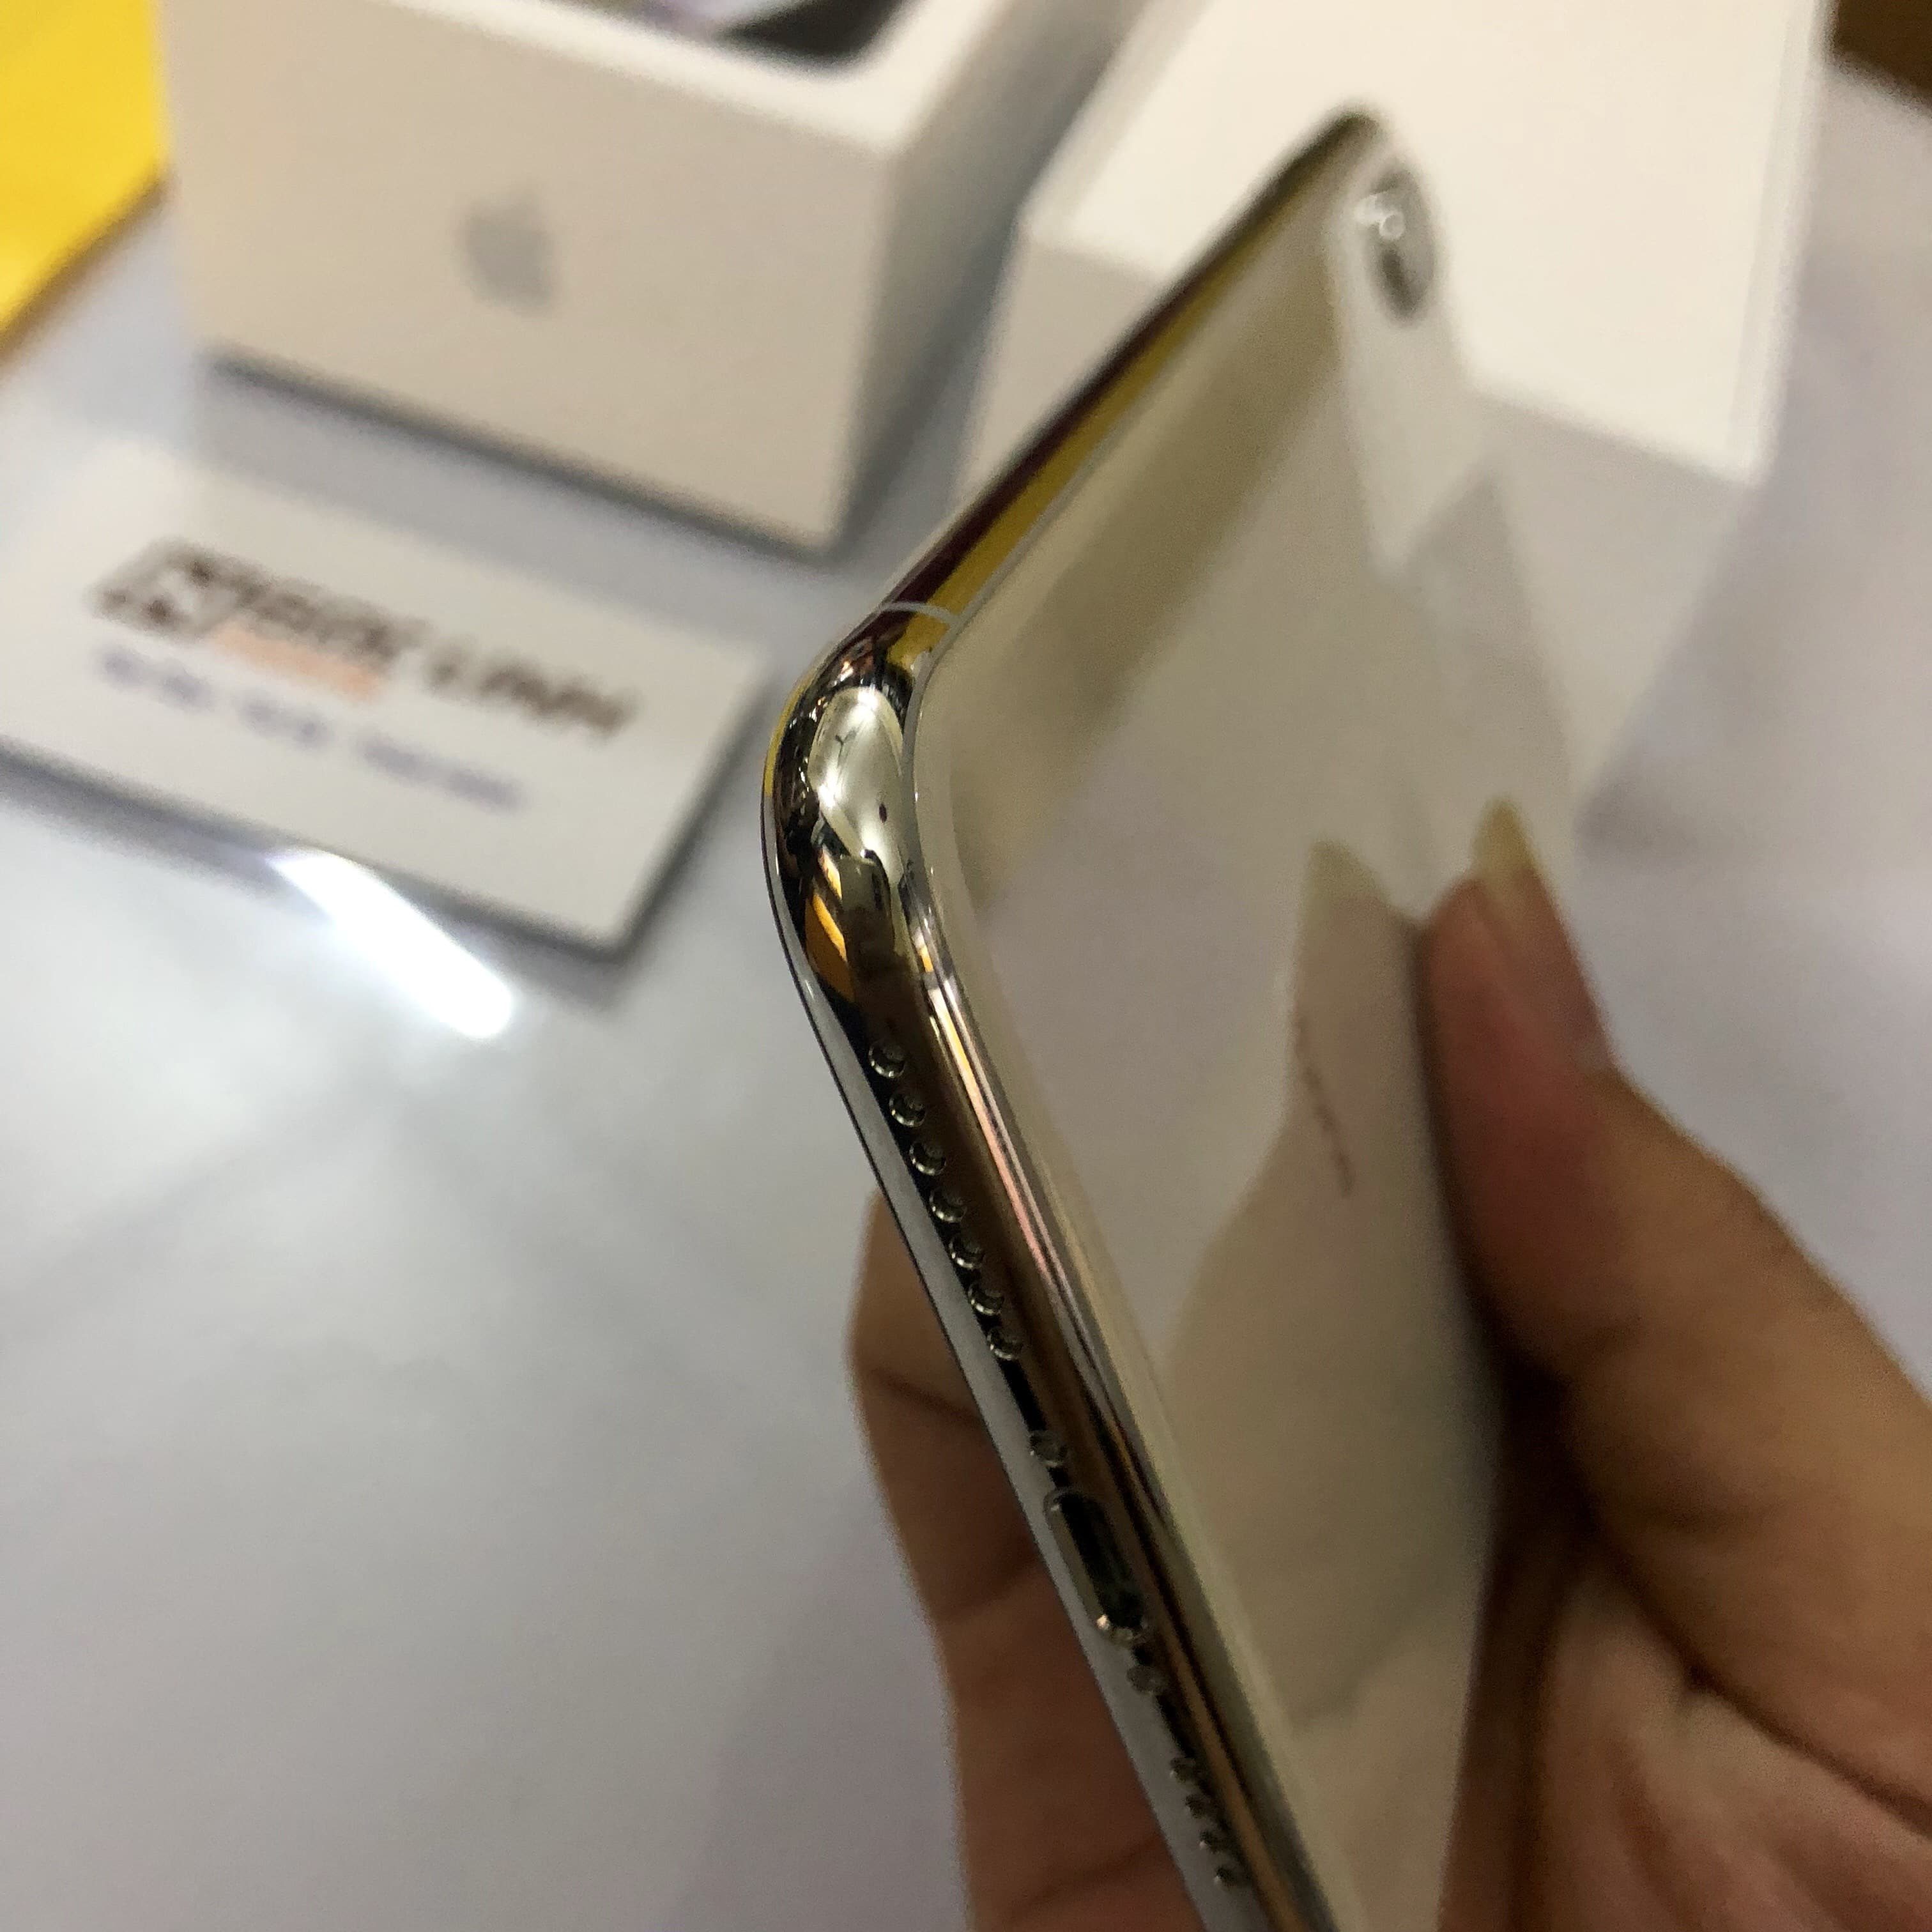 iPhone Xs Max iphone xs max - Ngọc Linh Mobile đập hộp iPhone Xs Max 256G